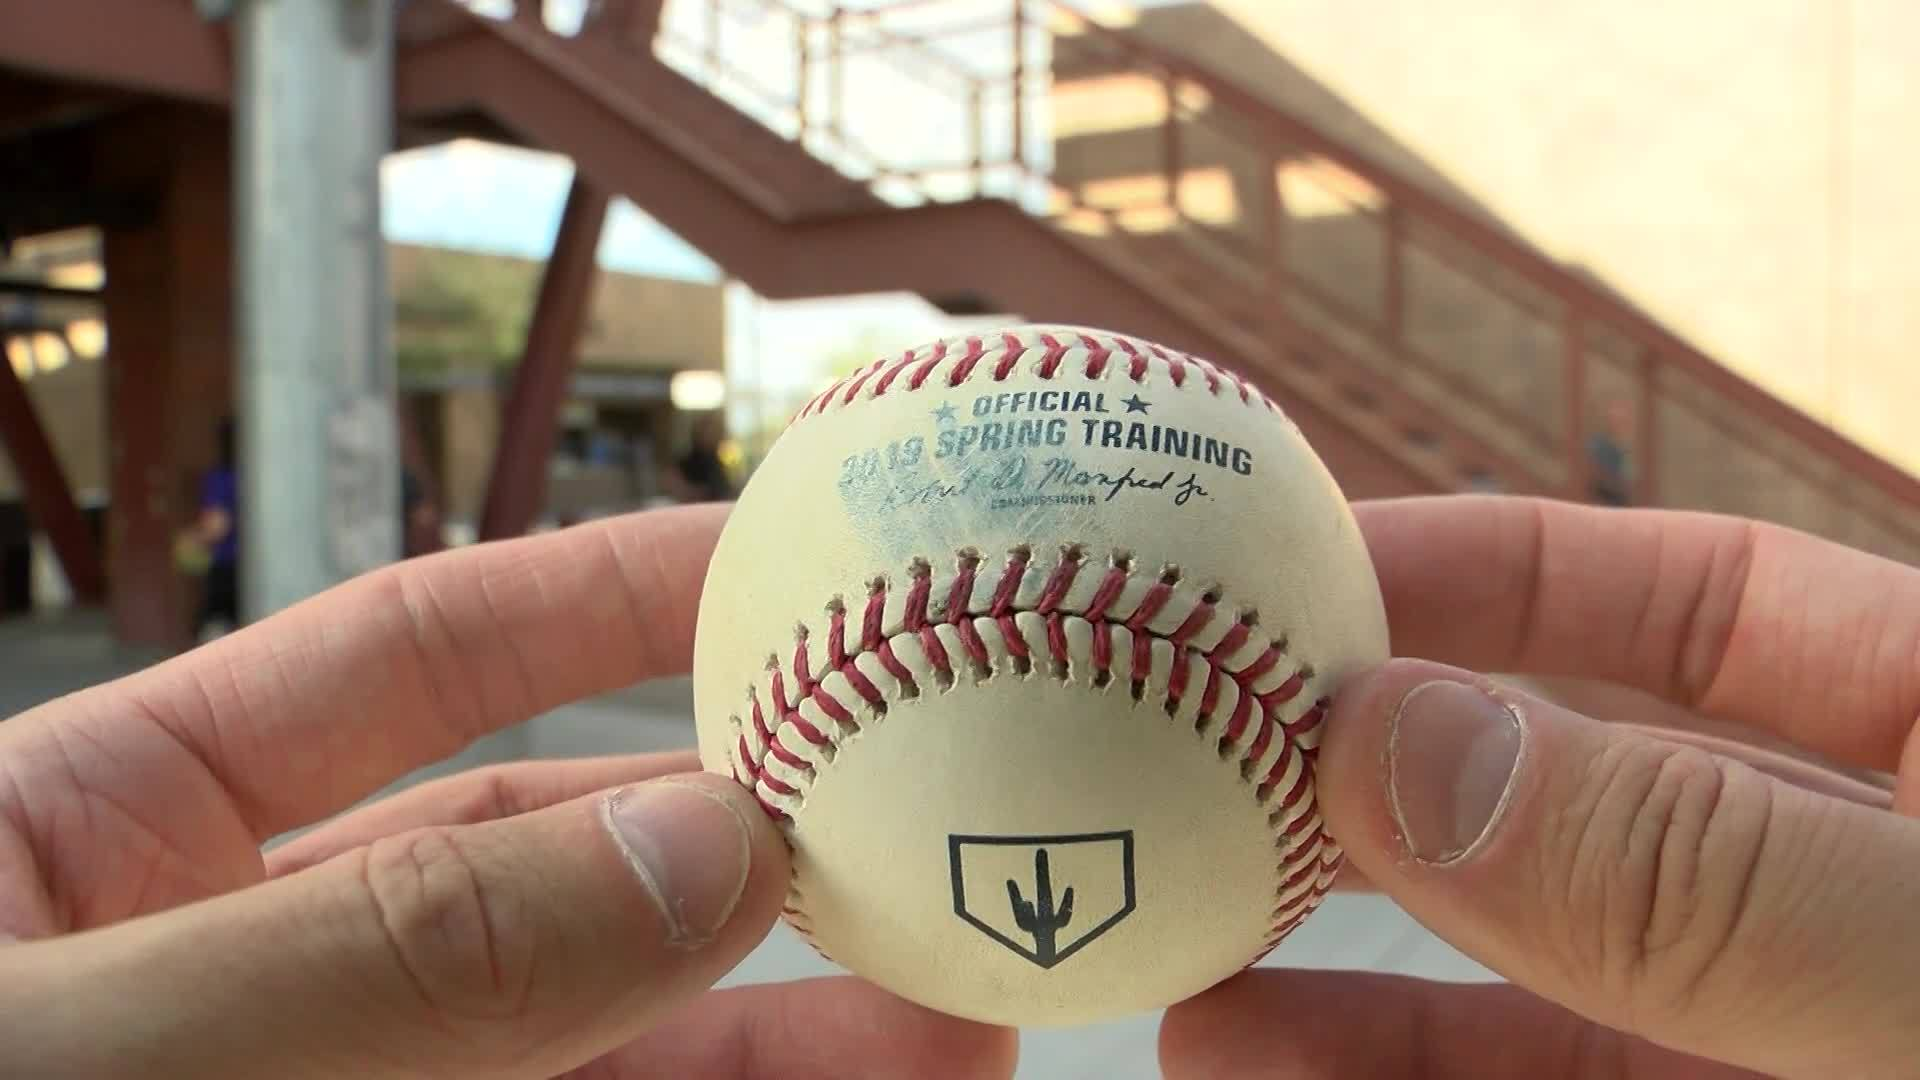 Close up look at an official Spring Training baseball